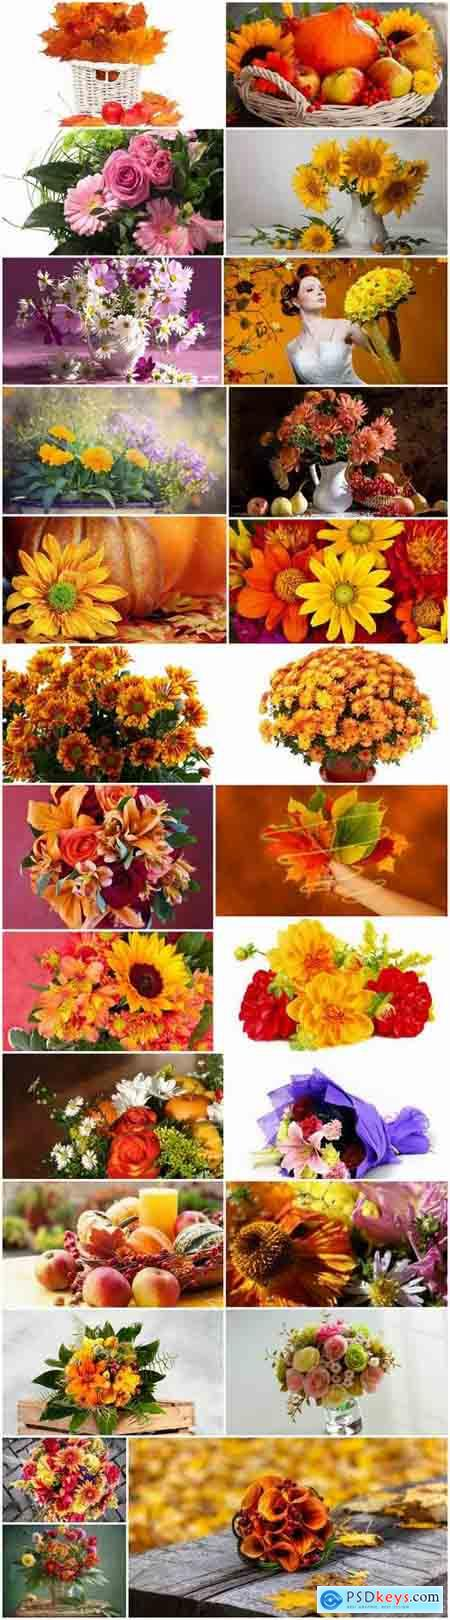 Autumn flowers bouquet of yellow 25 HQ Jpeg